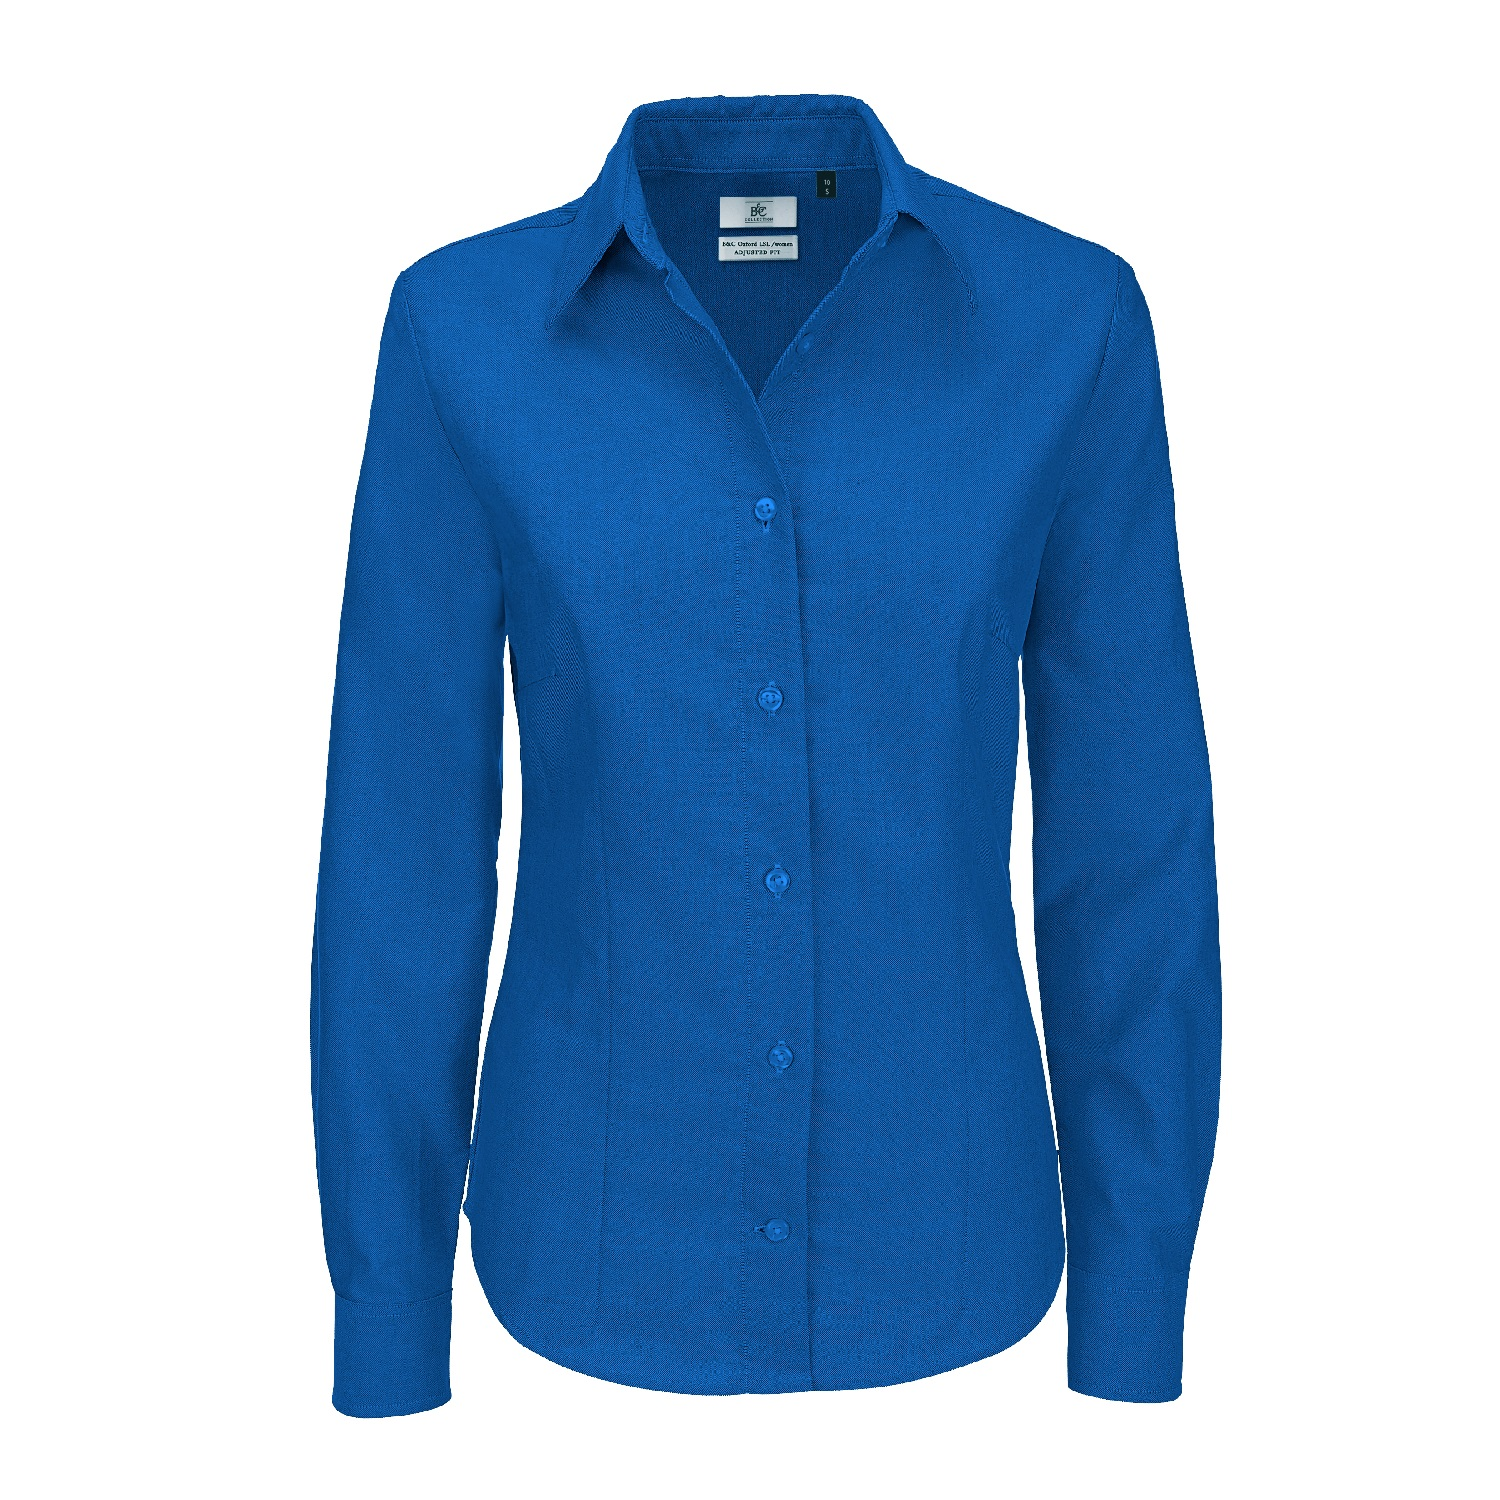 Ba707 oxford long sleeve women gdb manufacturing for T shirt printing oxford